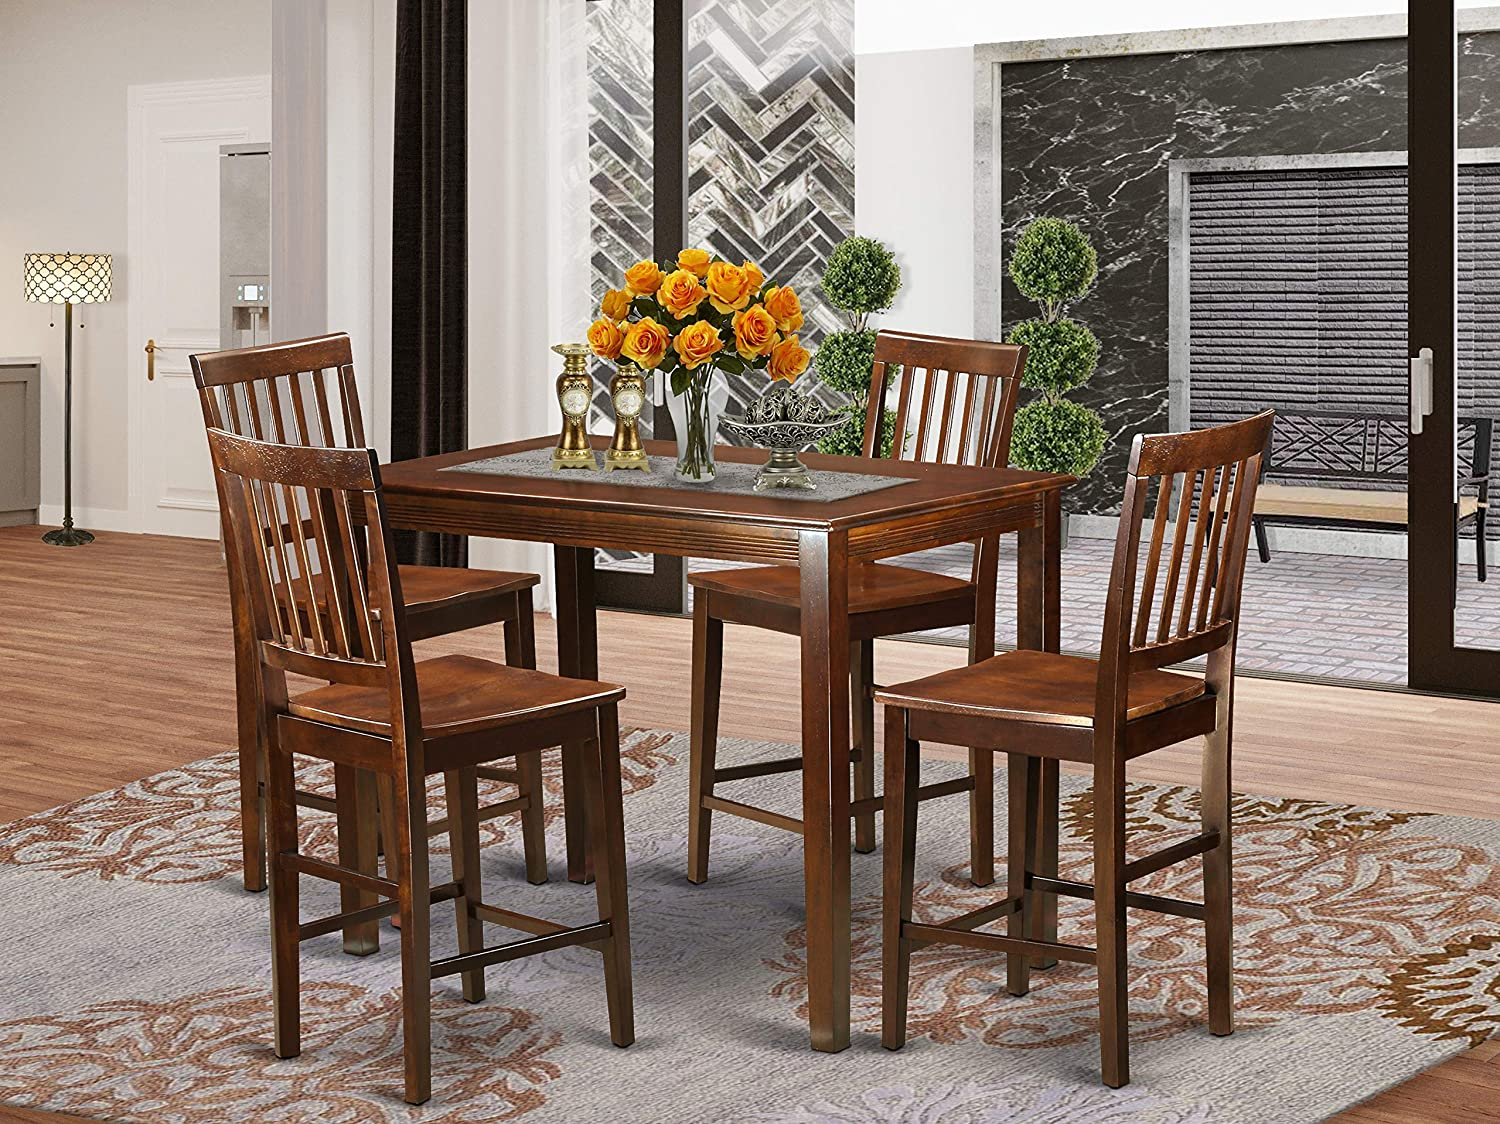 5 Pc Dining counter height set-pub Table and 4 Dining Chairs.